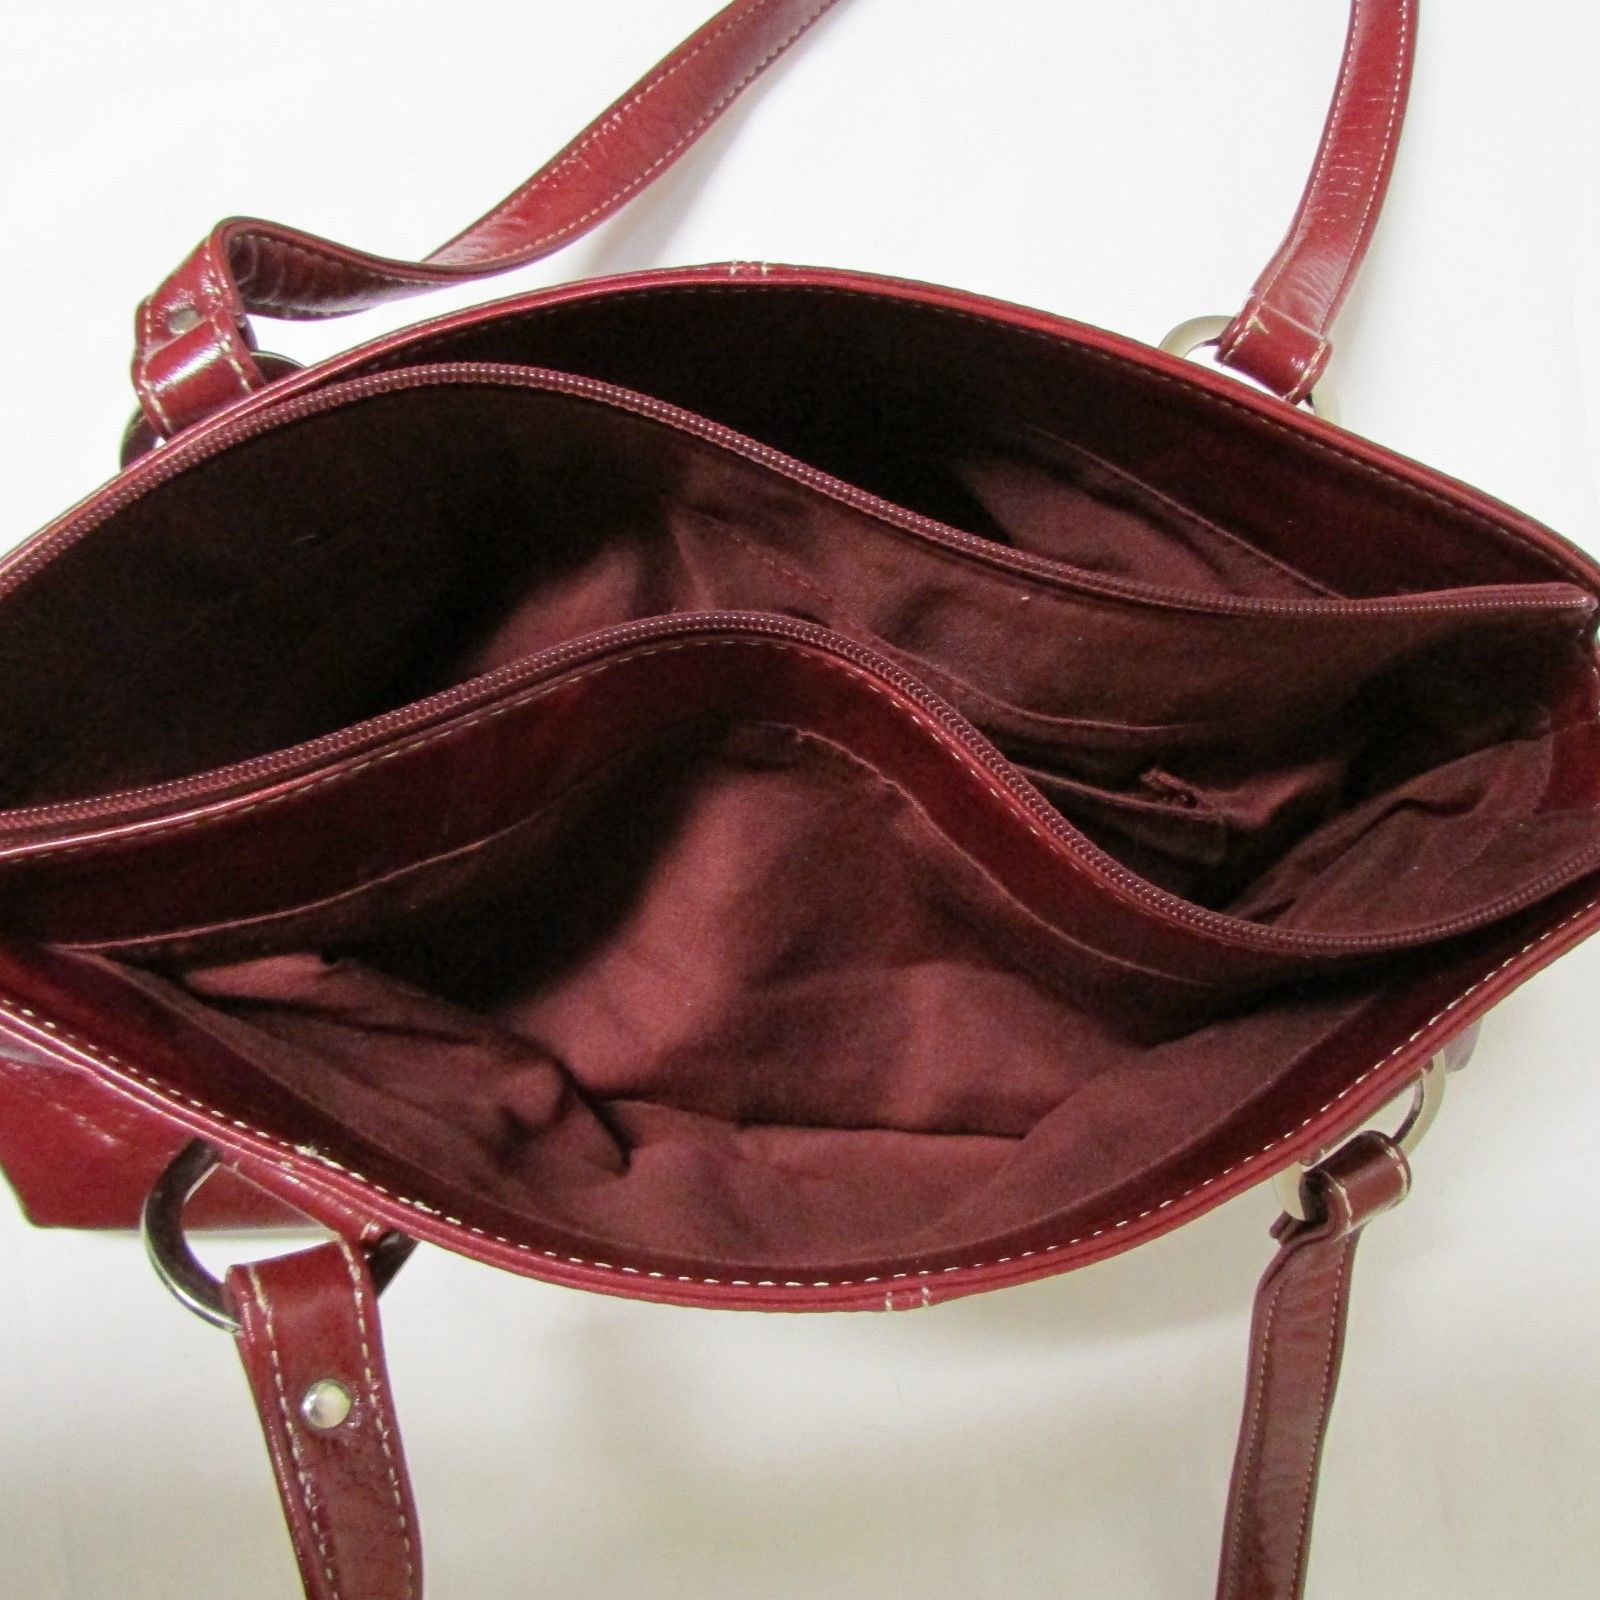 Relic Brand Cranberry Red Faux Leather Shoulder Bag Size Small image 6